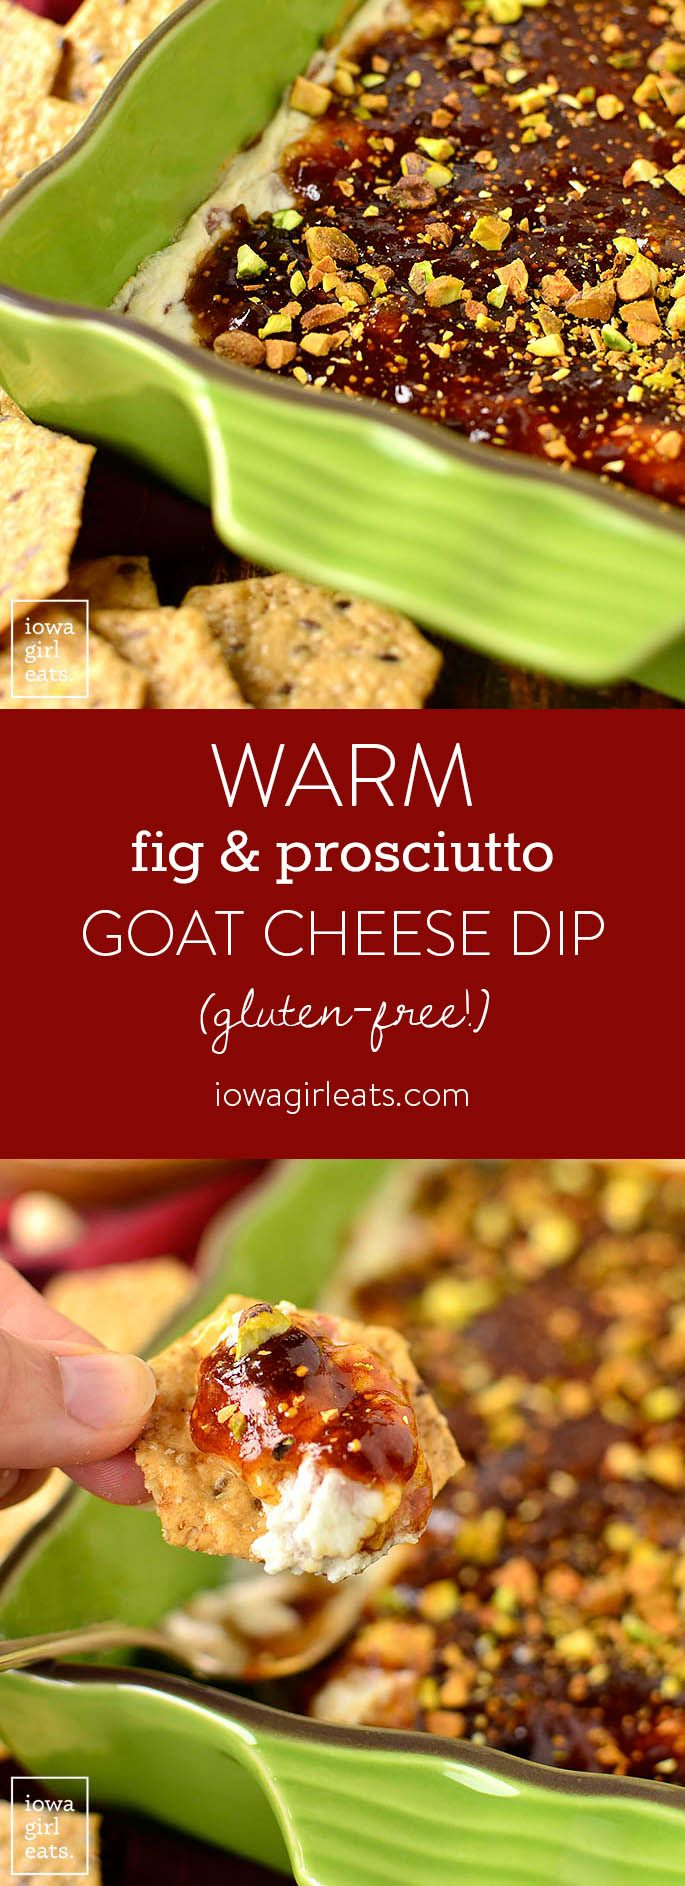 Warm Fig and Prosciutto Goat Cheese Dip is an irresistible gluten-free dip recipe! Layers of goat cheese and prosciutto, fig jam, and pistachios is a hit at parties. #glutenfree #Crunchmaster @Crunchmaster | iowagirleats.com